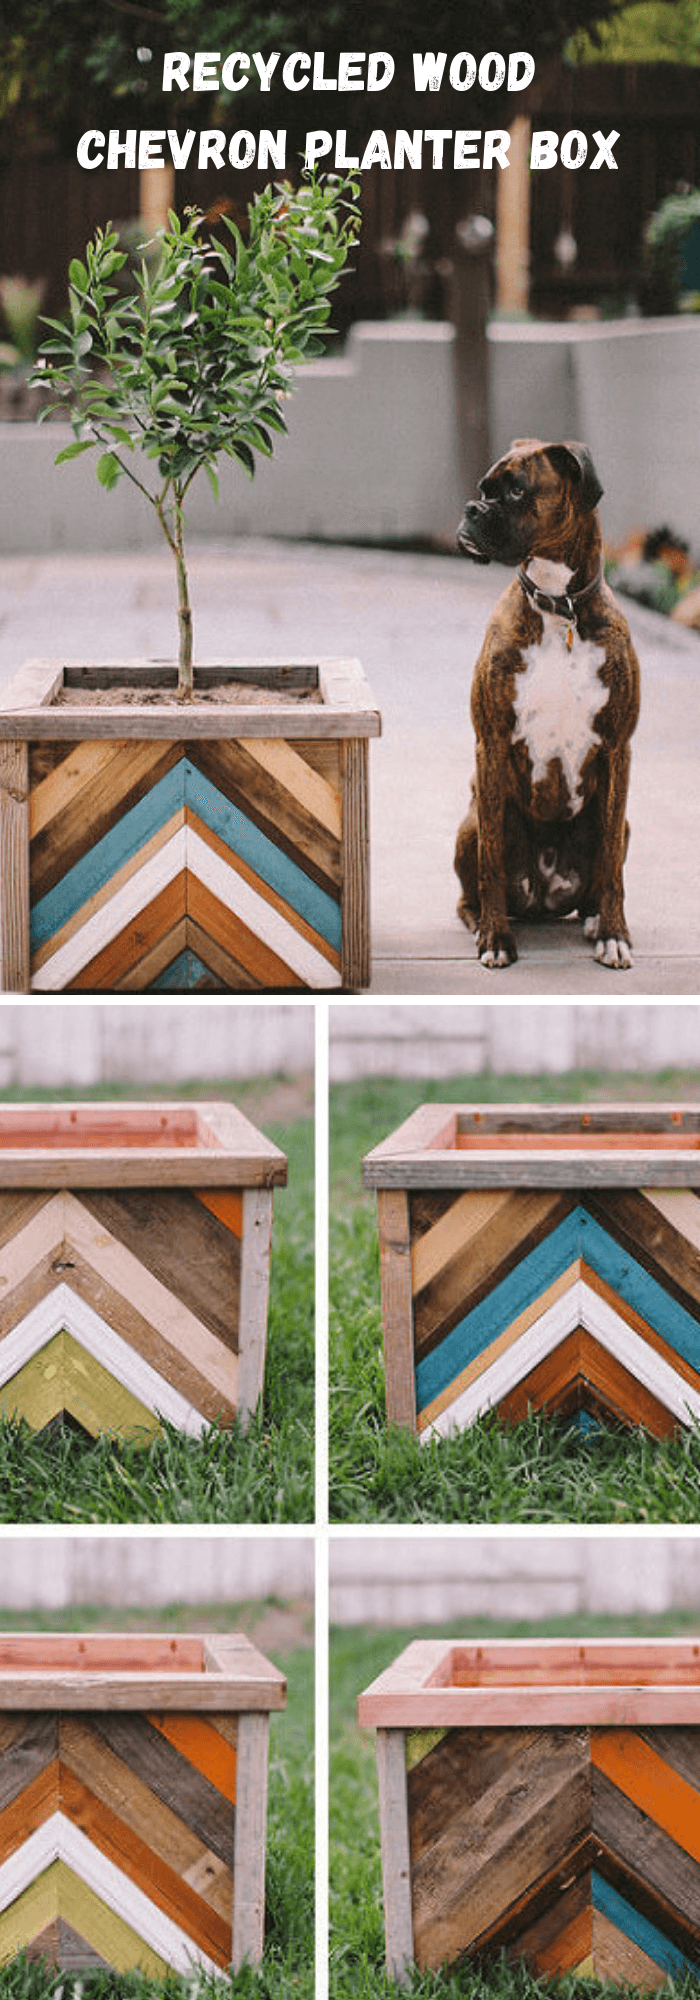 DIY Recycled Wood Chevron Planter Box